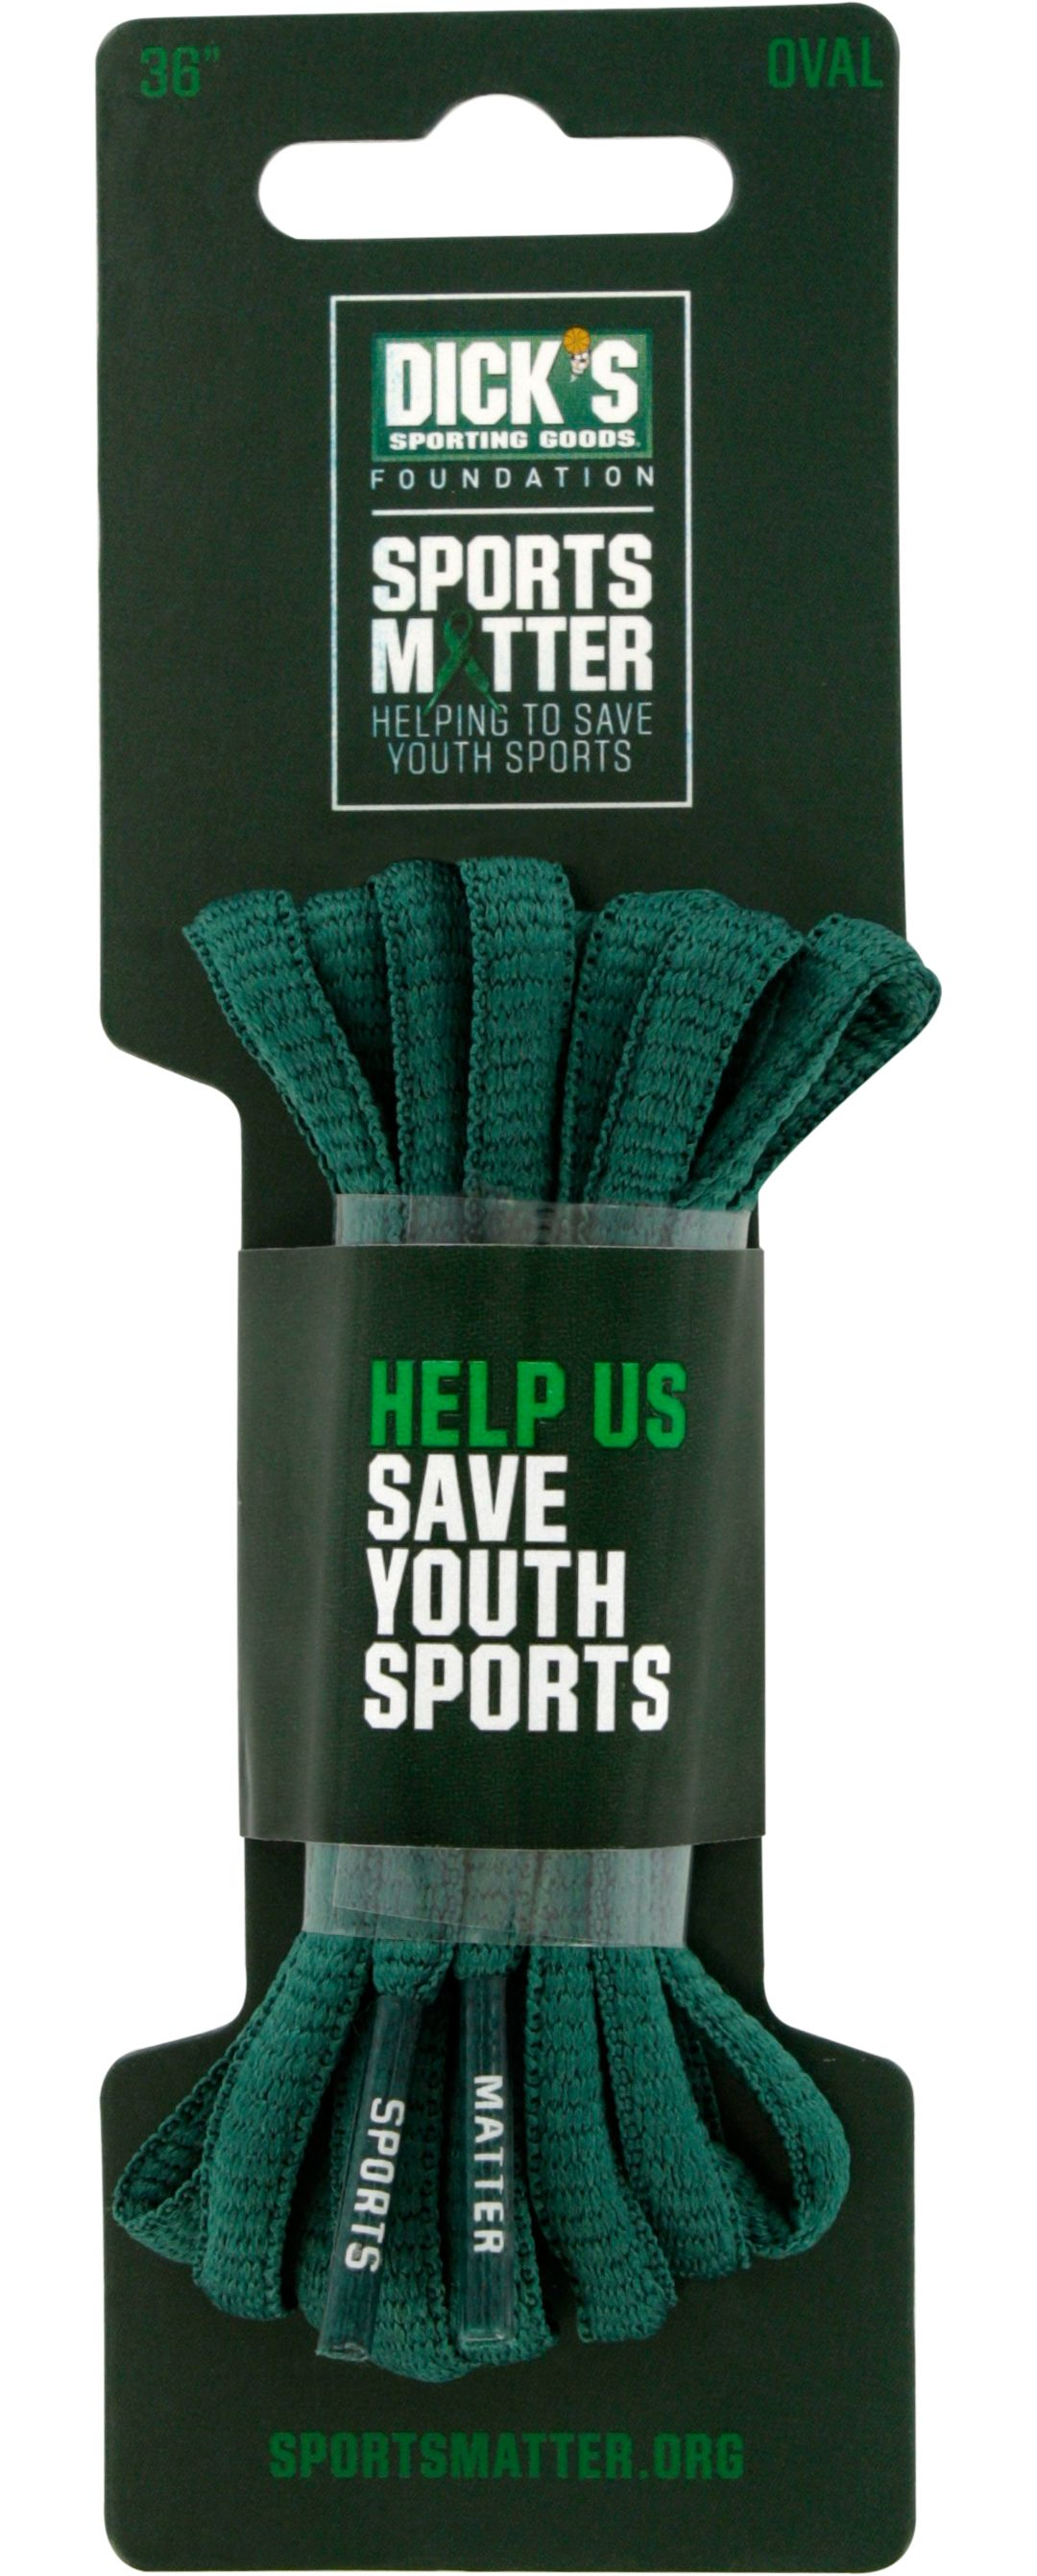 """The DICK'S Sporting Goods Foundation: Sports Matter Green Oval 36"""" Laces"""